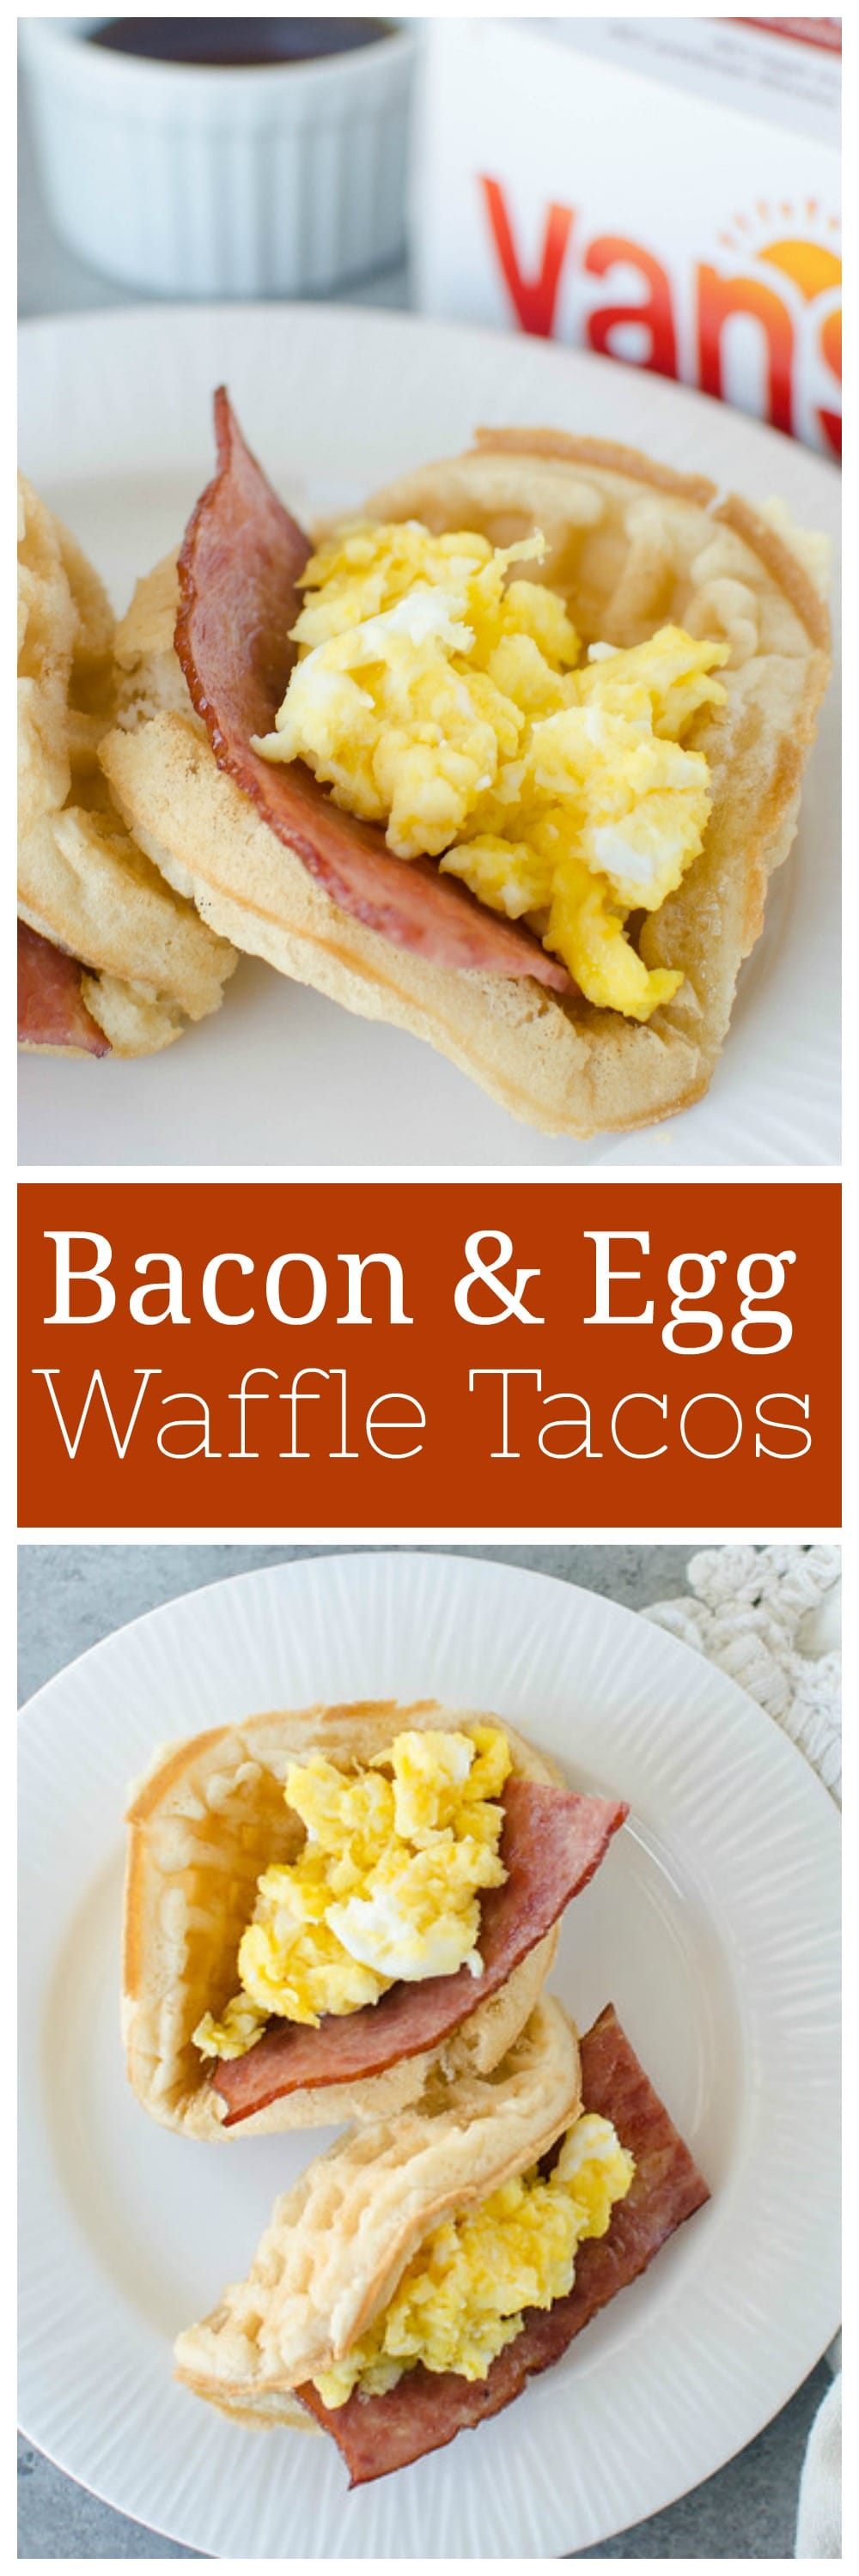 Bacon and Egg Breakfast Tacos - cheesy eggs and crispy bacon stuffed into a waffle and drizzled with maple syrup! An easy and fun breakfast.